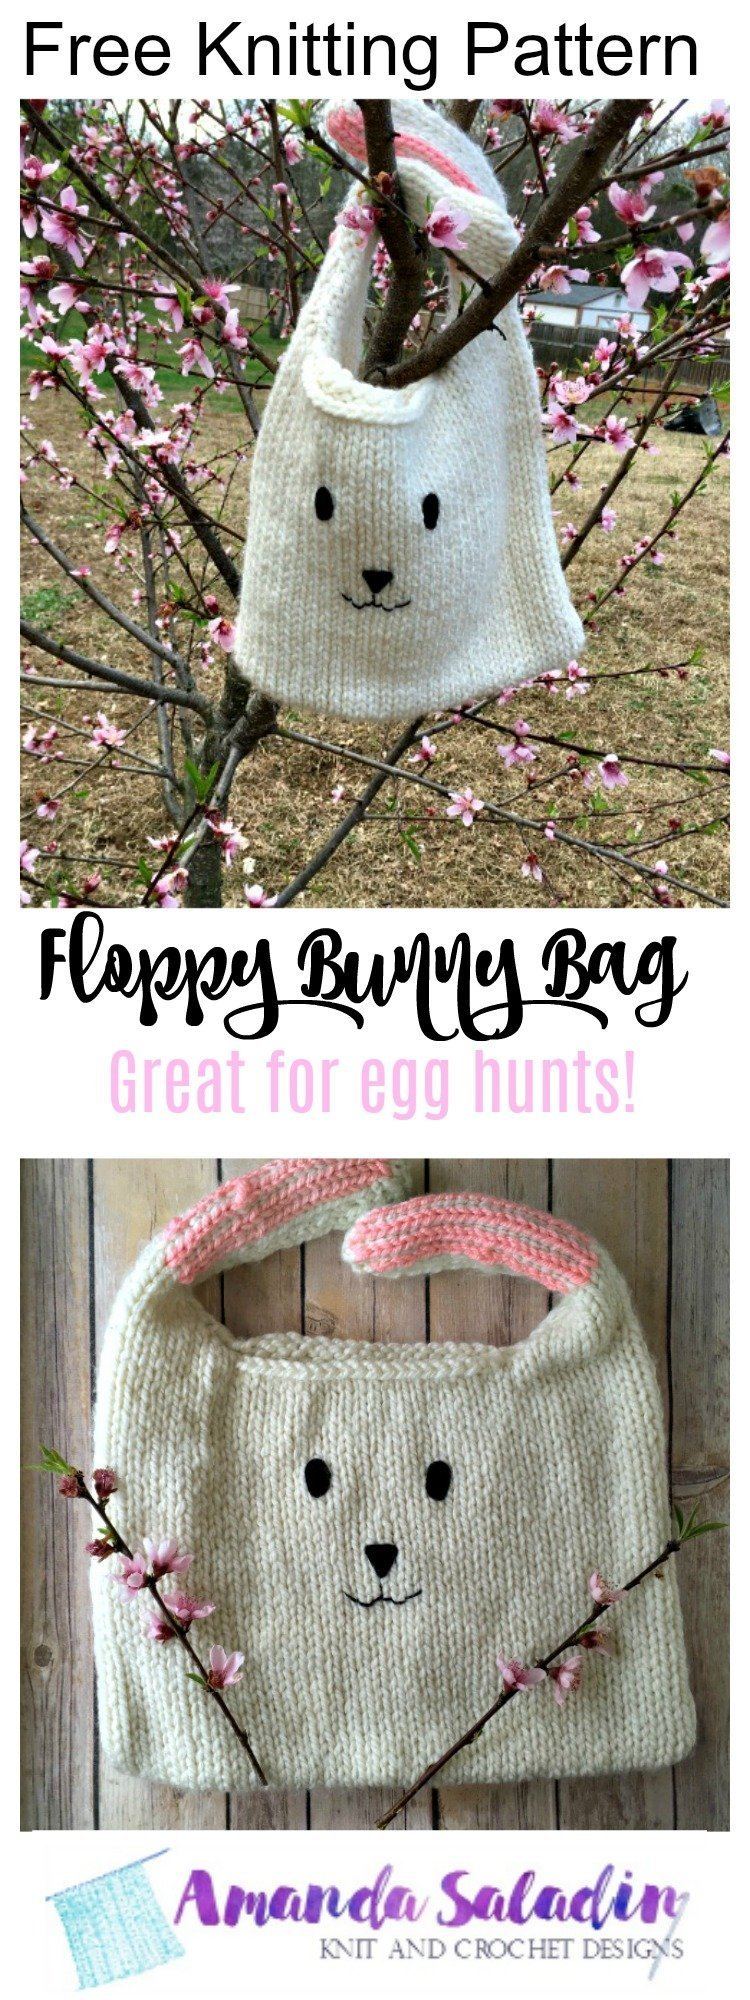 Free Knitting Pattern - Floppy Bunny Bag